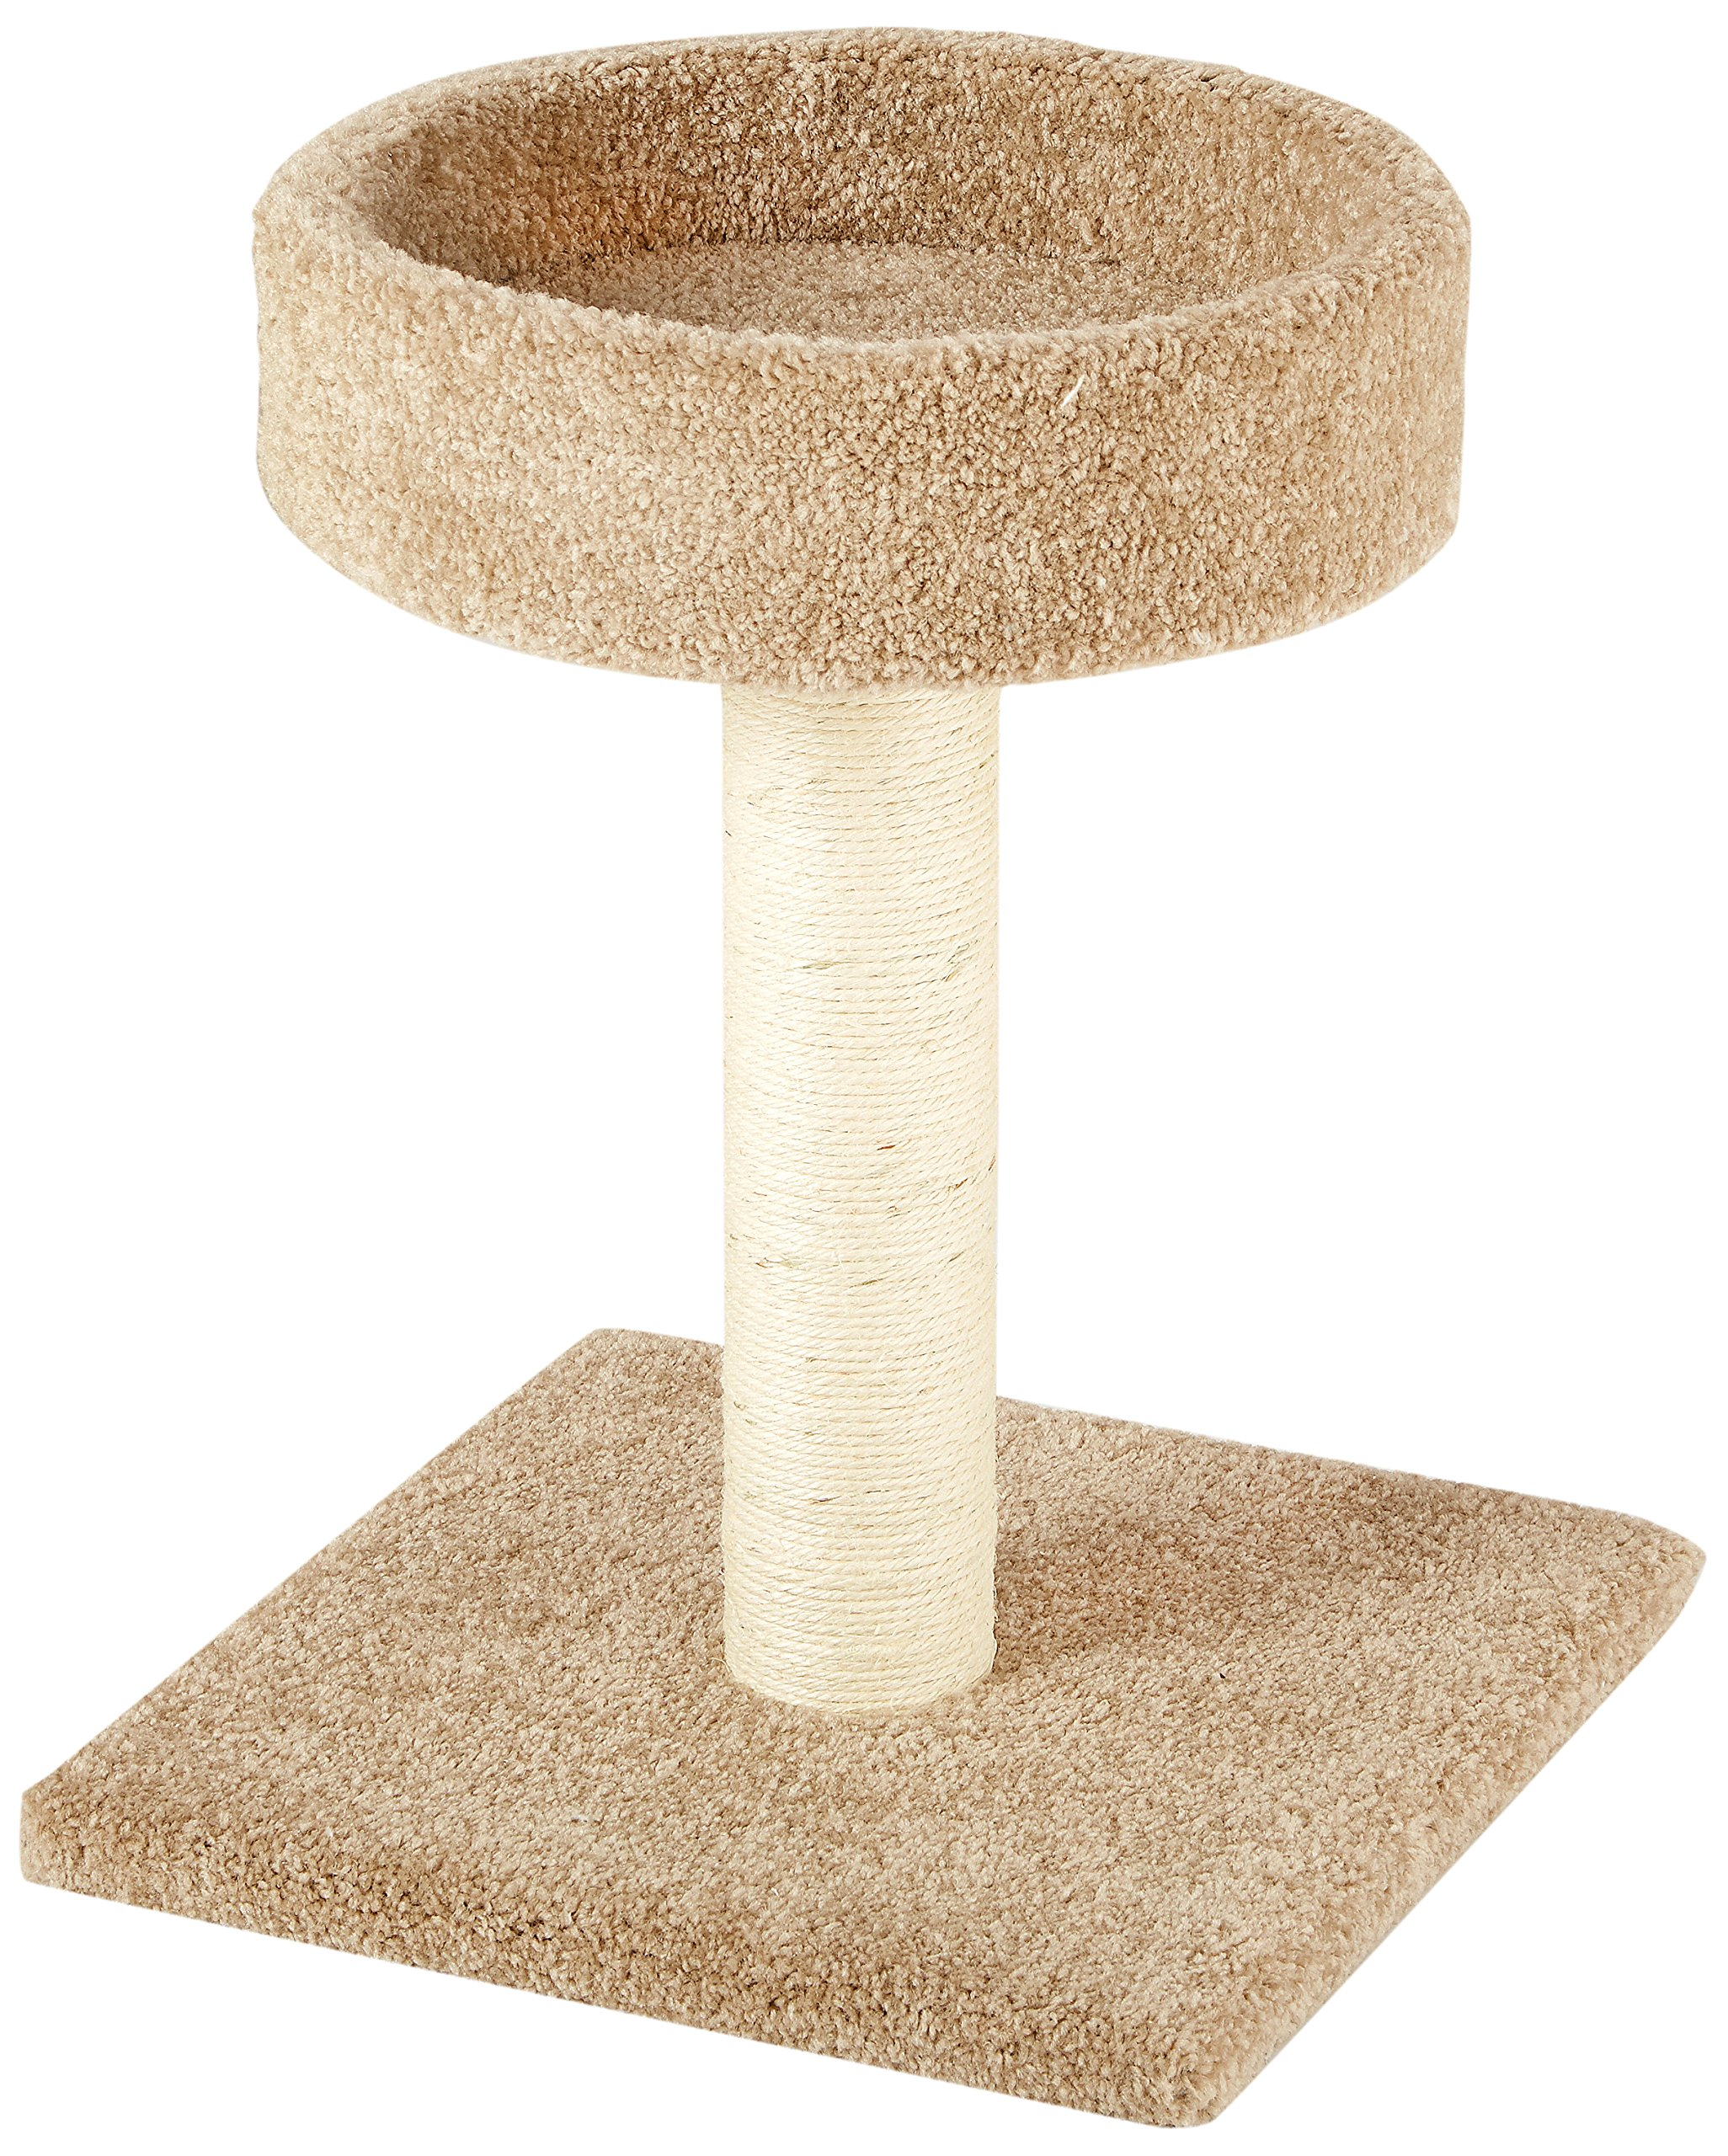 AmazonBasics Cat Tree with Scratching Posts Small